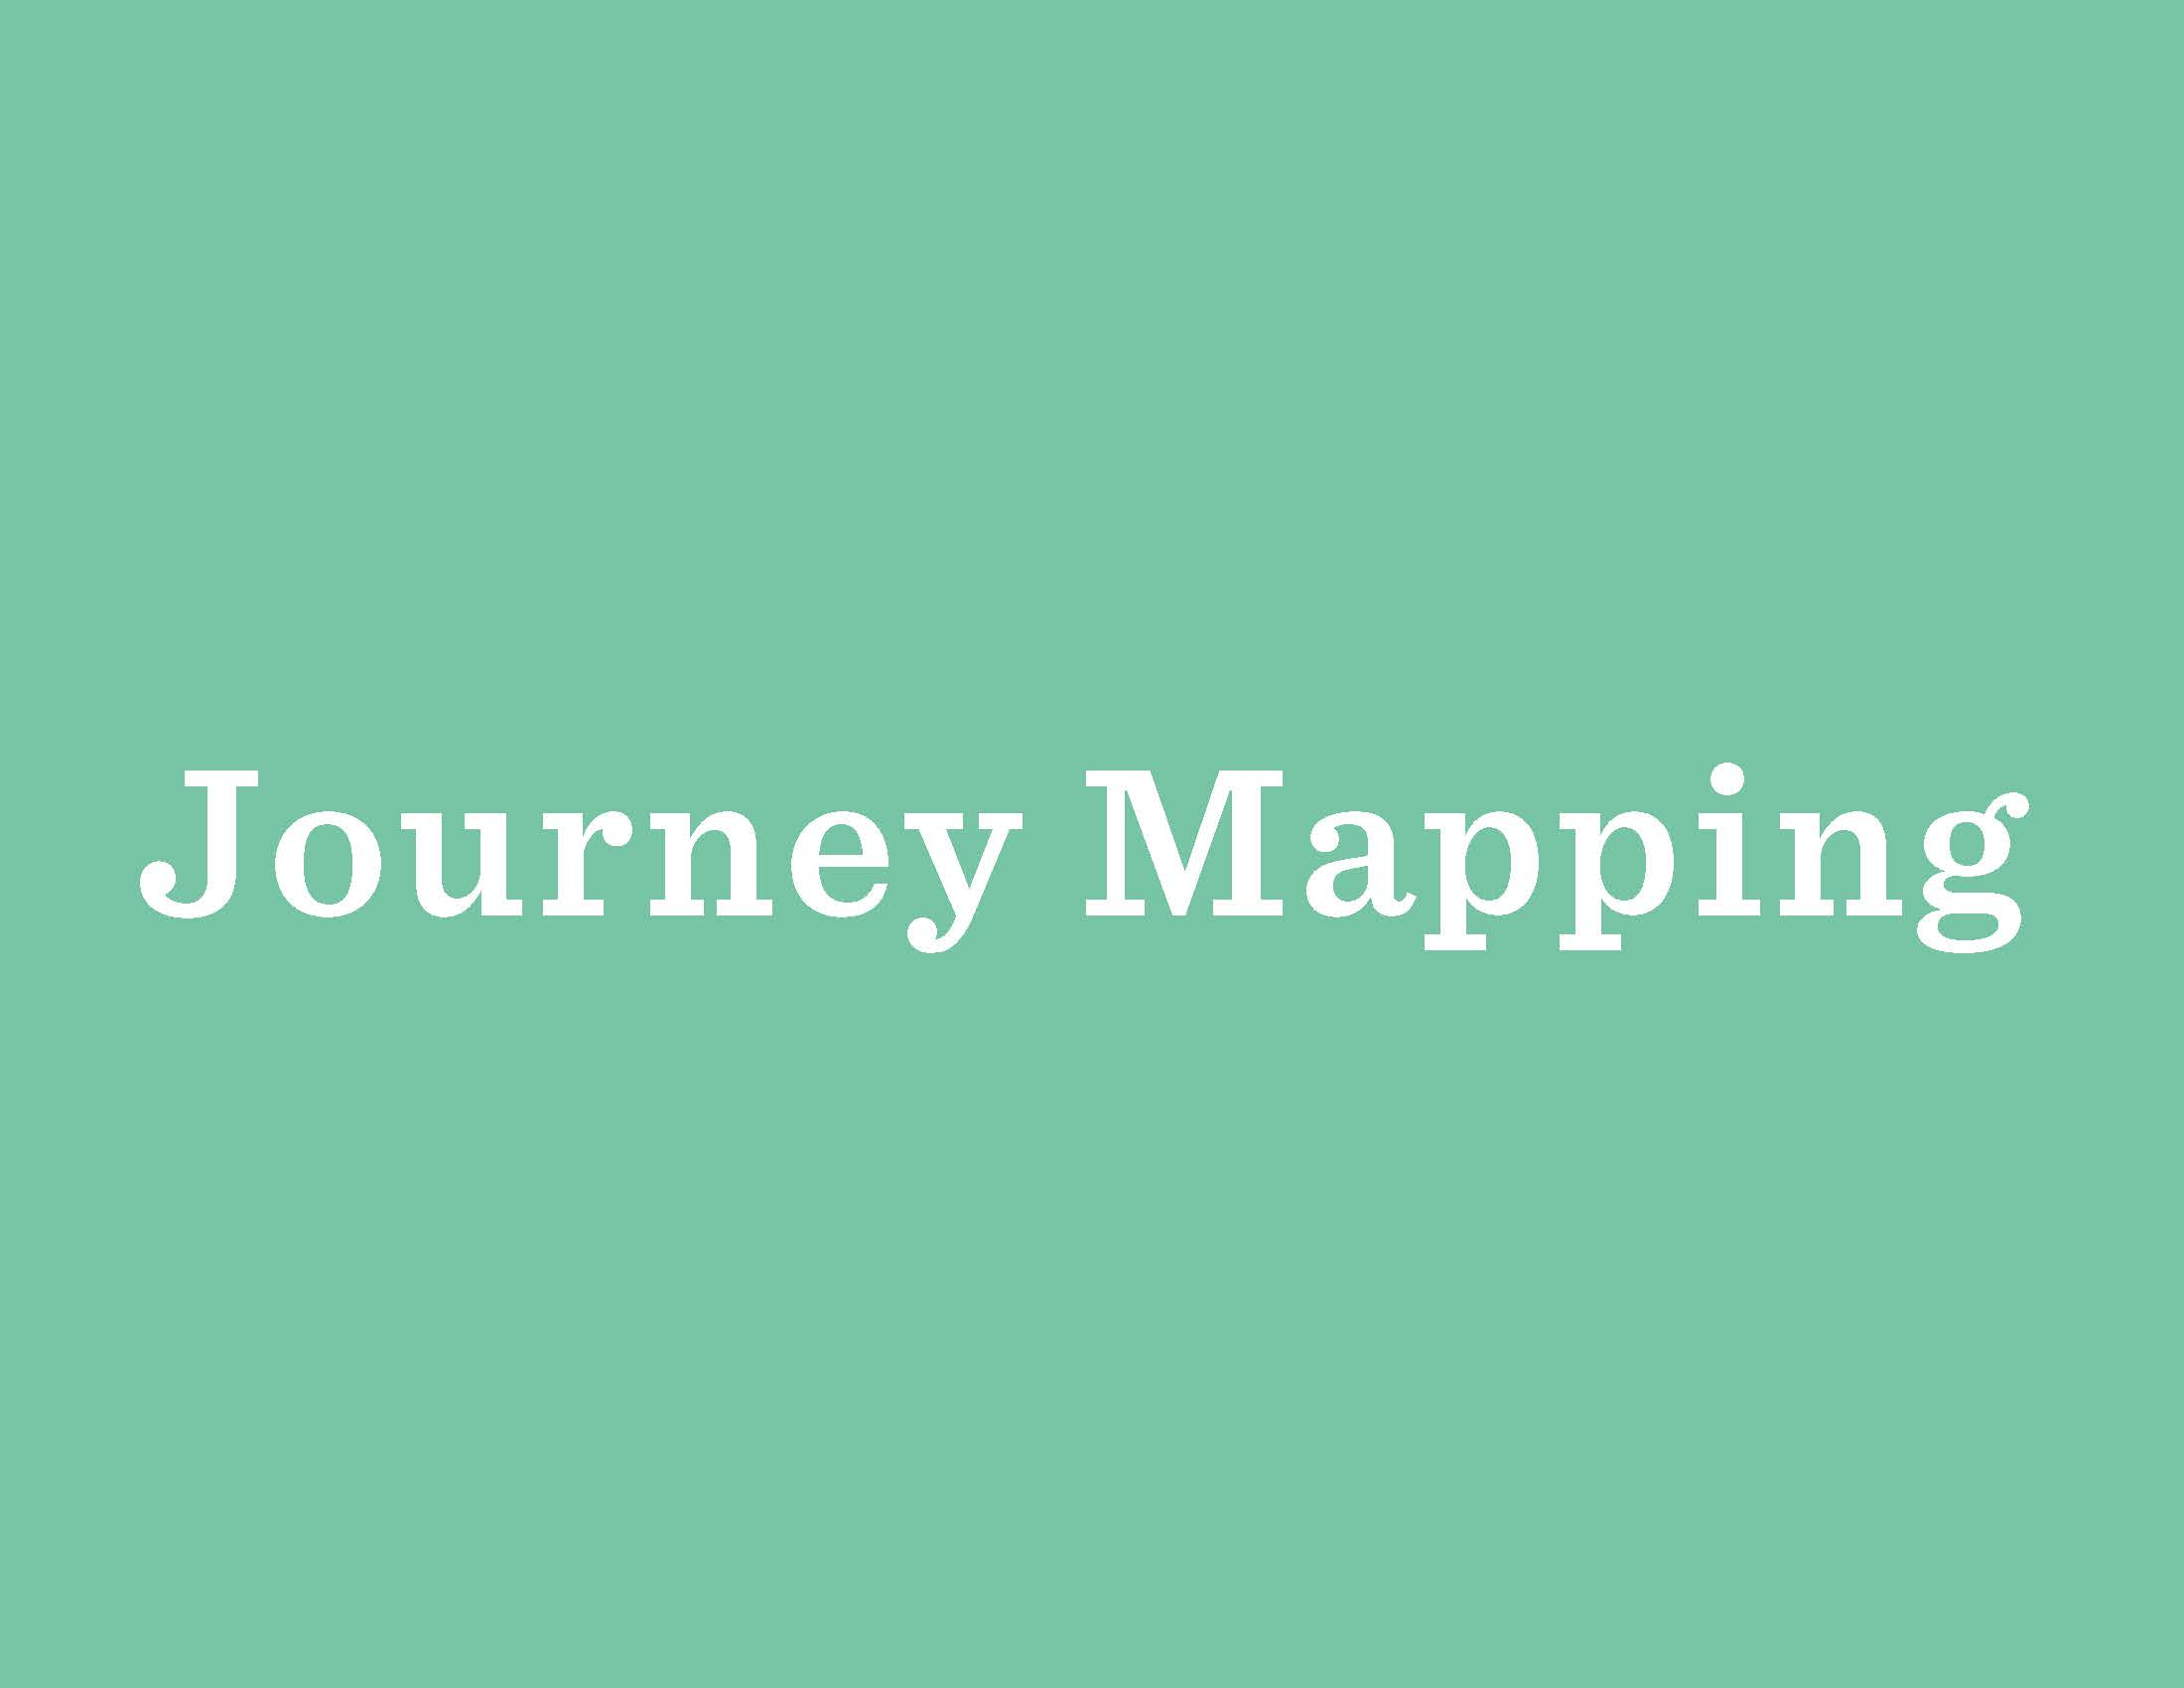 In the Design Thinking process,  Journey Mapping  can be a useful tool for helping you move from generating ideas in the inspiration phase to finalizing a concrete design plan.  Here  you can read an example of how Journey Mapping was applied in Brazilian Libraries.